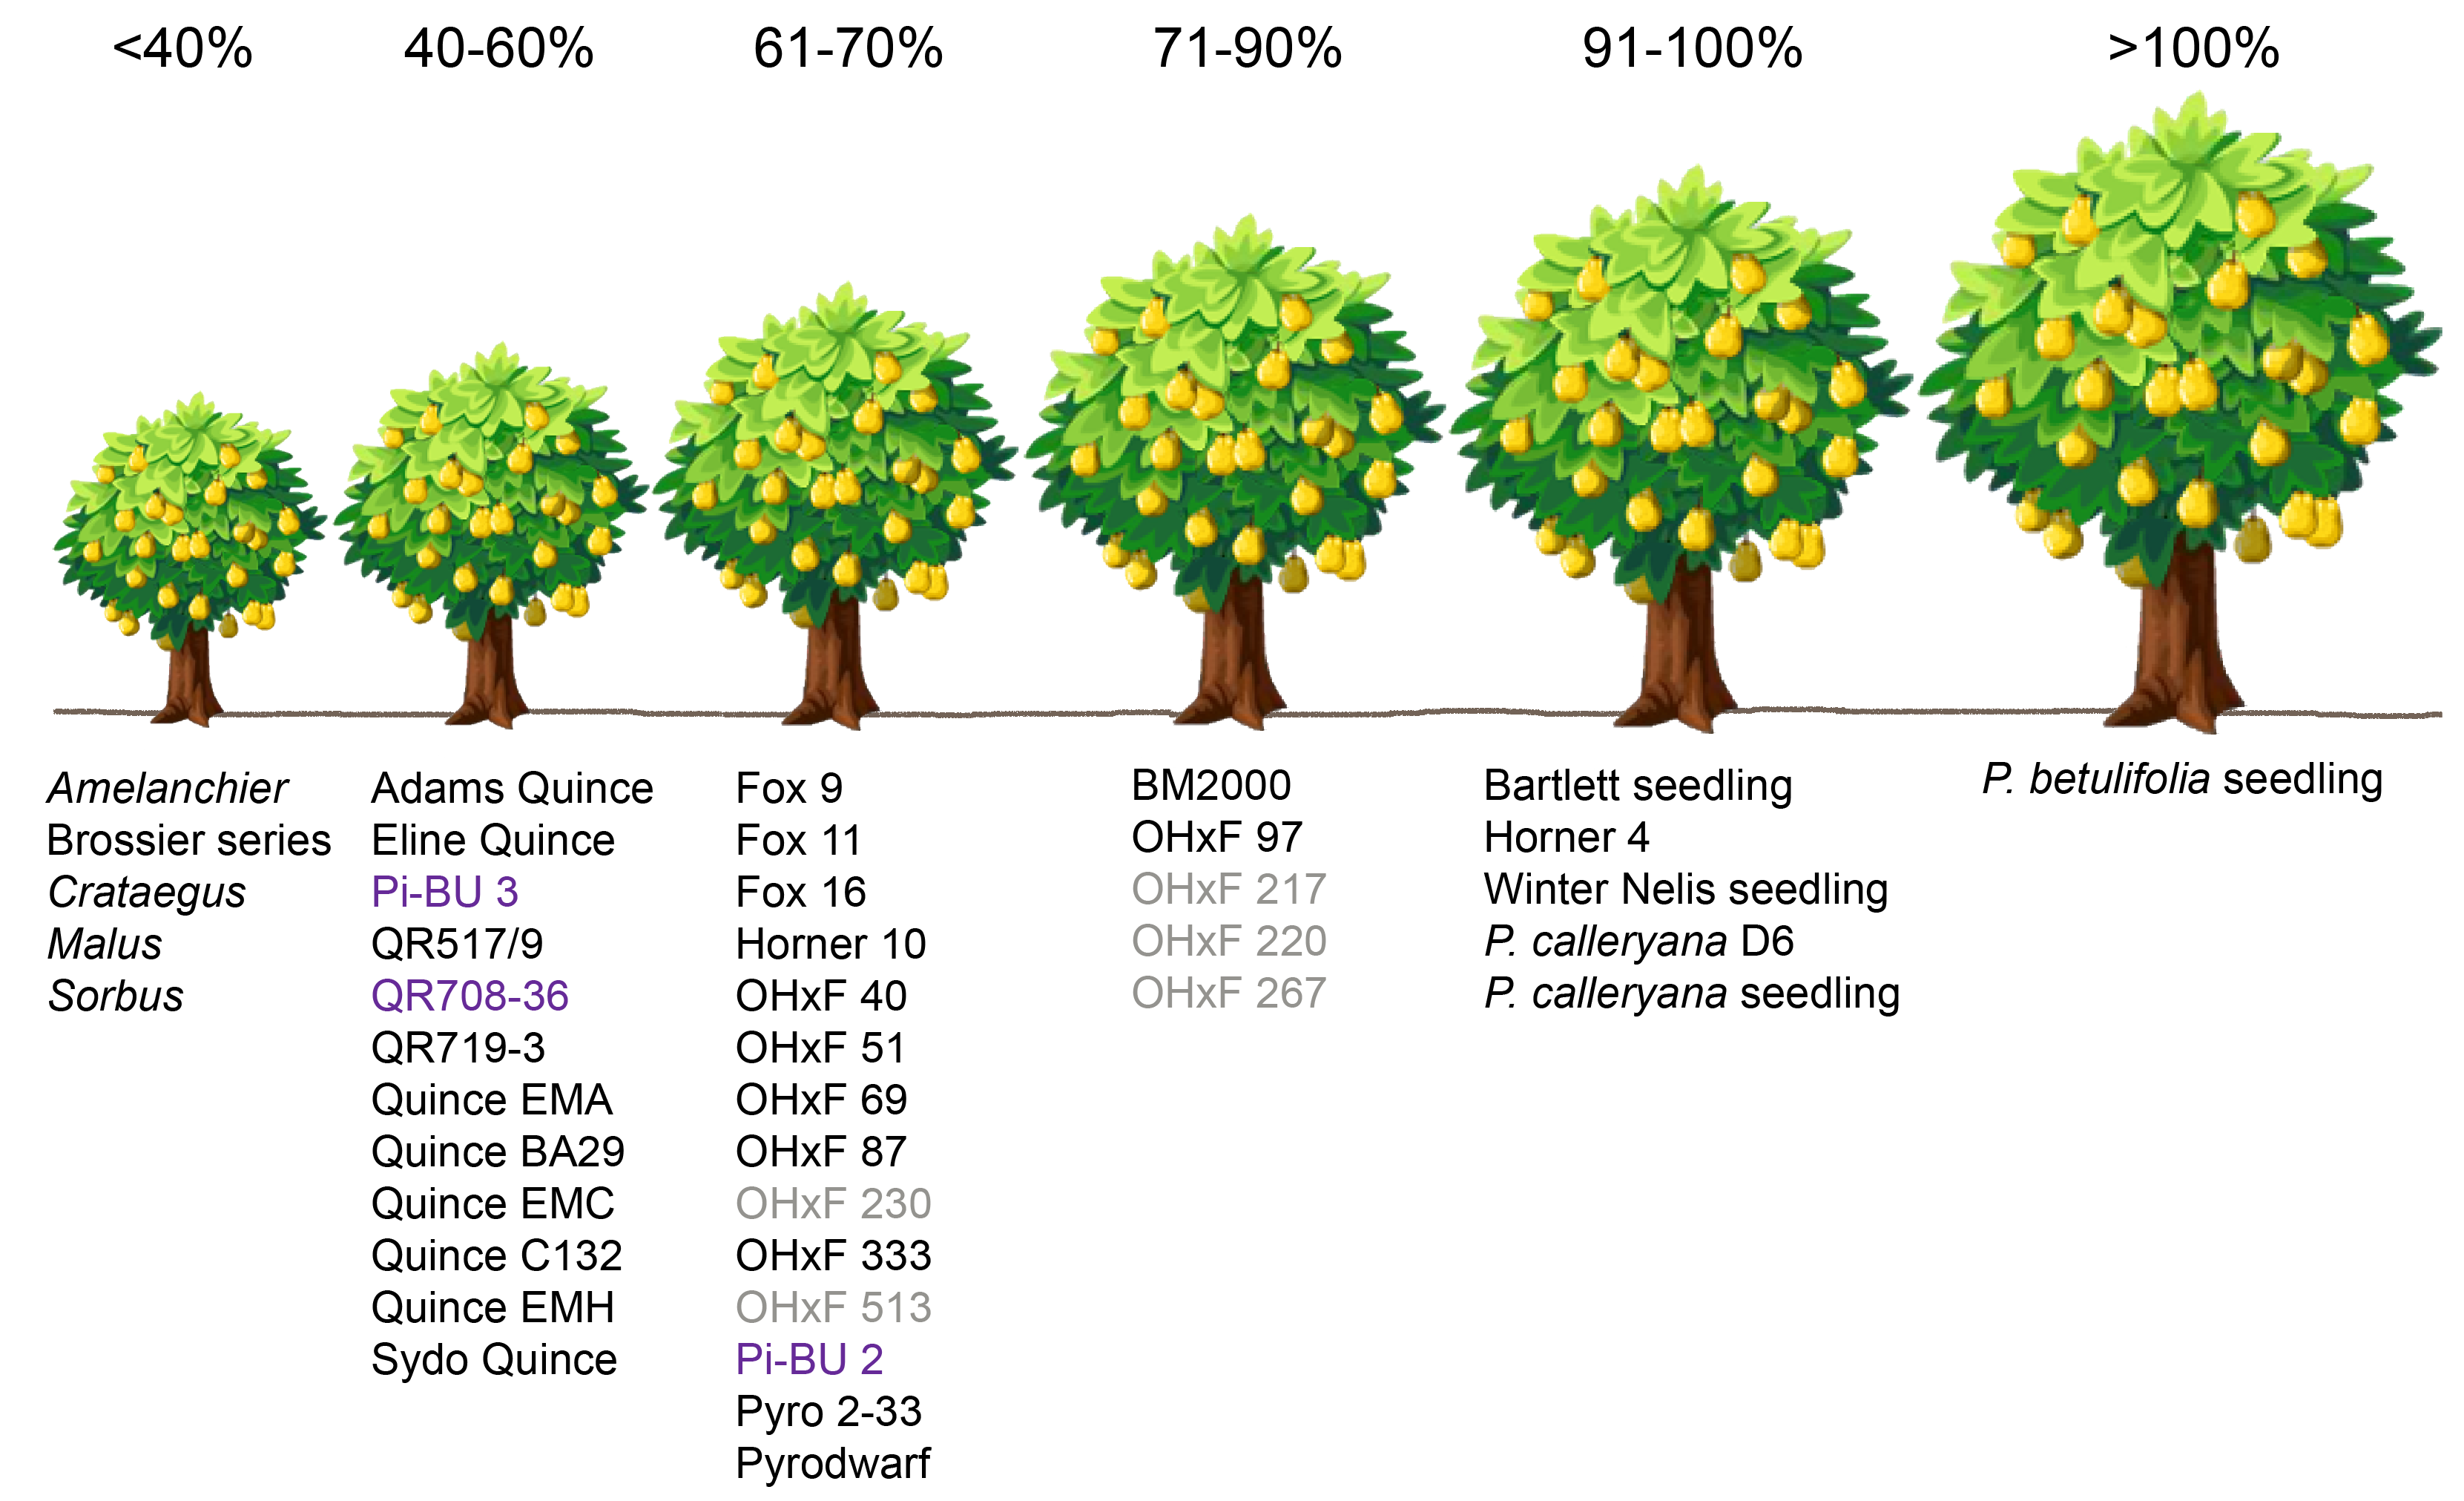 Images Frech Training Of Fruit Trees Google Search